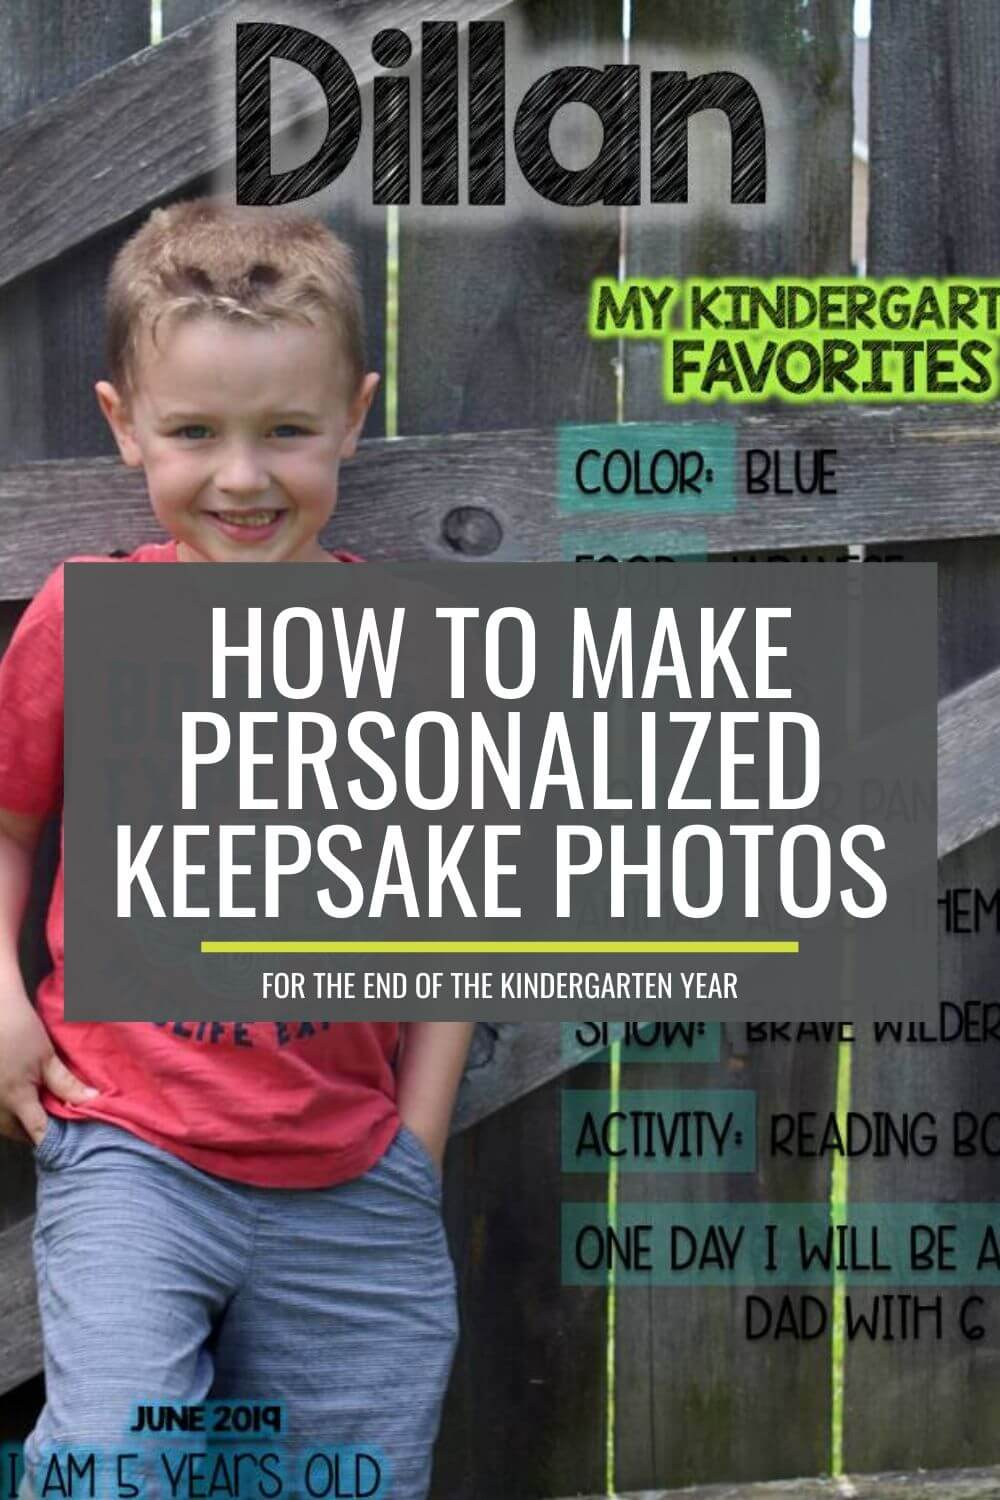 How to Make Personalized Kindergarten Favorites Keepsake Photos